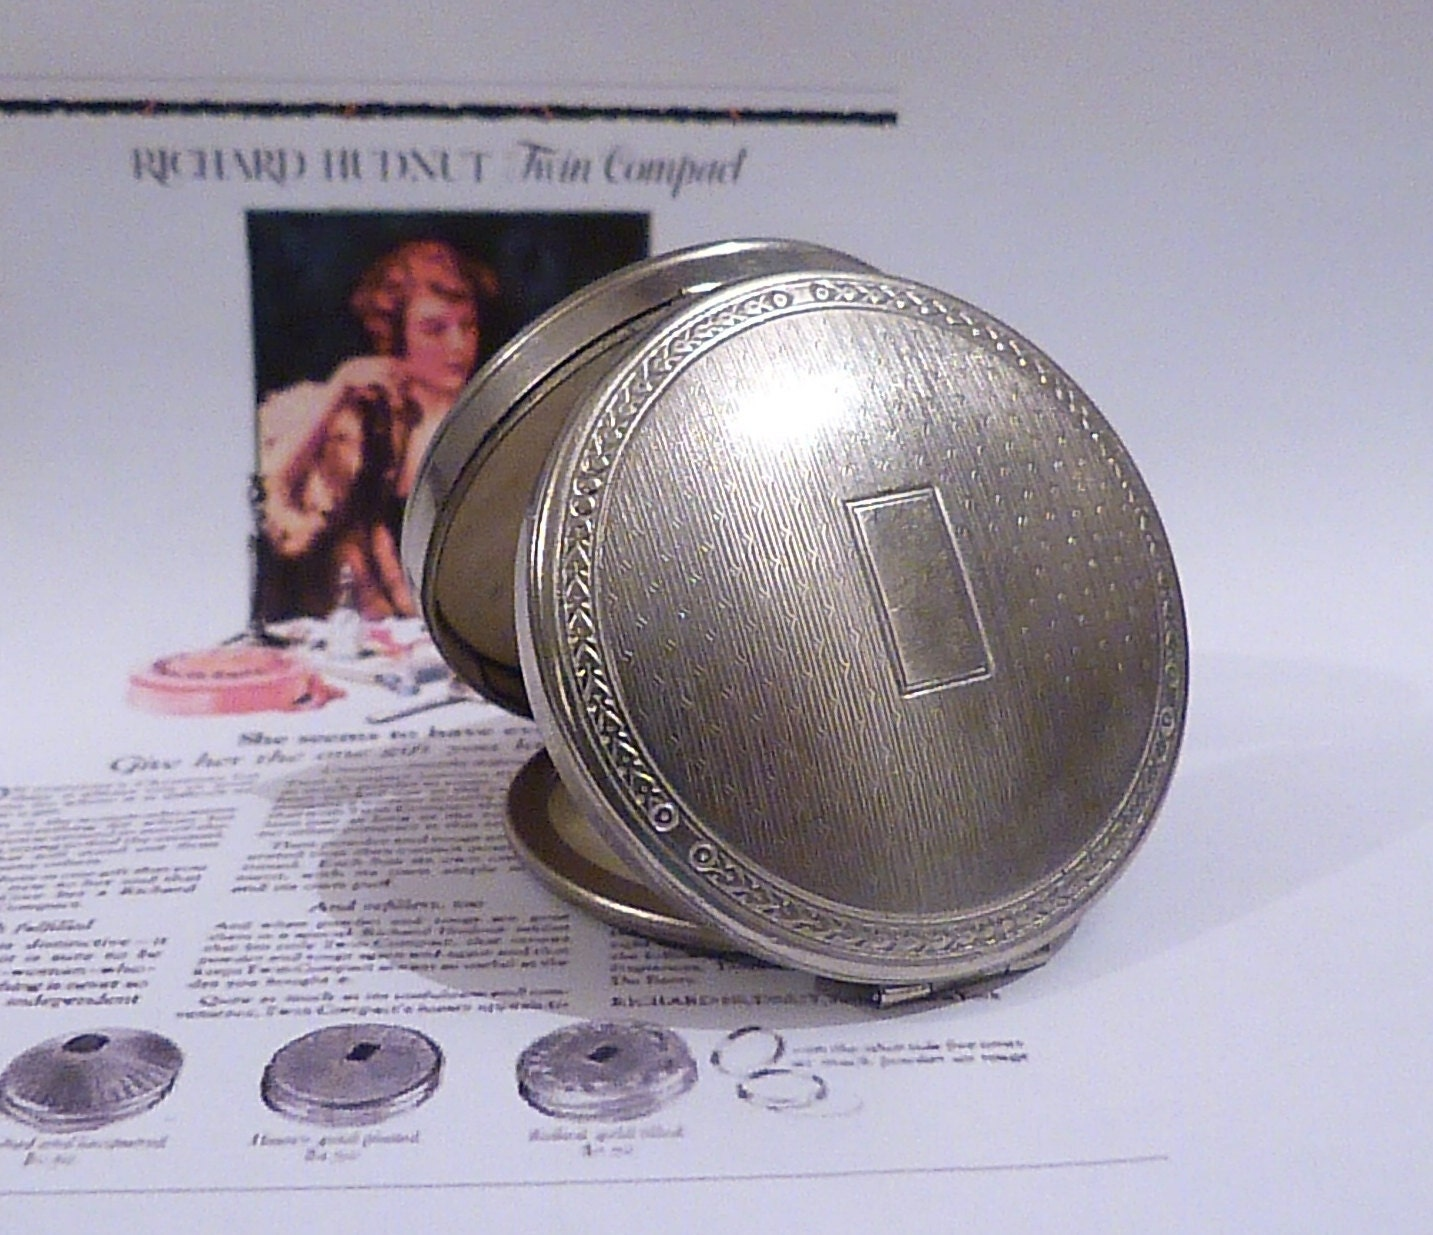 Antique Christening Gifts Richard Hudnut DEAUVILLE Compact  Art Deco Compacts 1920s Compacts Authentic Flapper Gifts